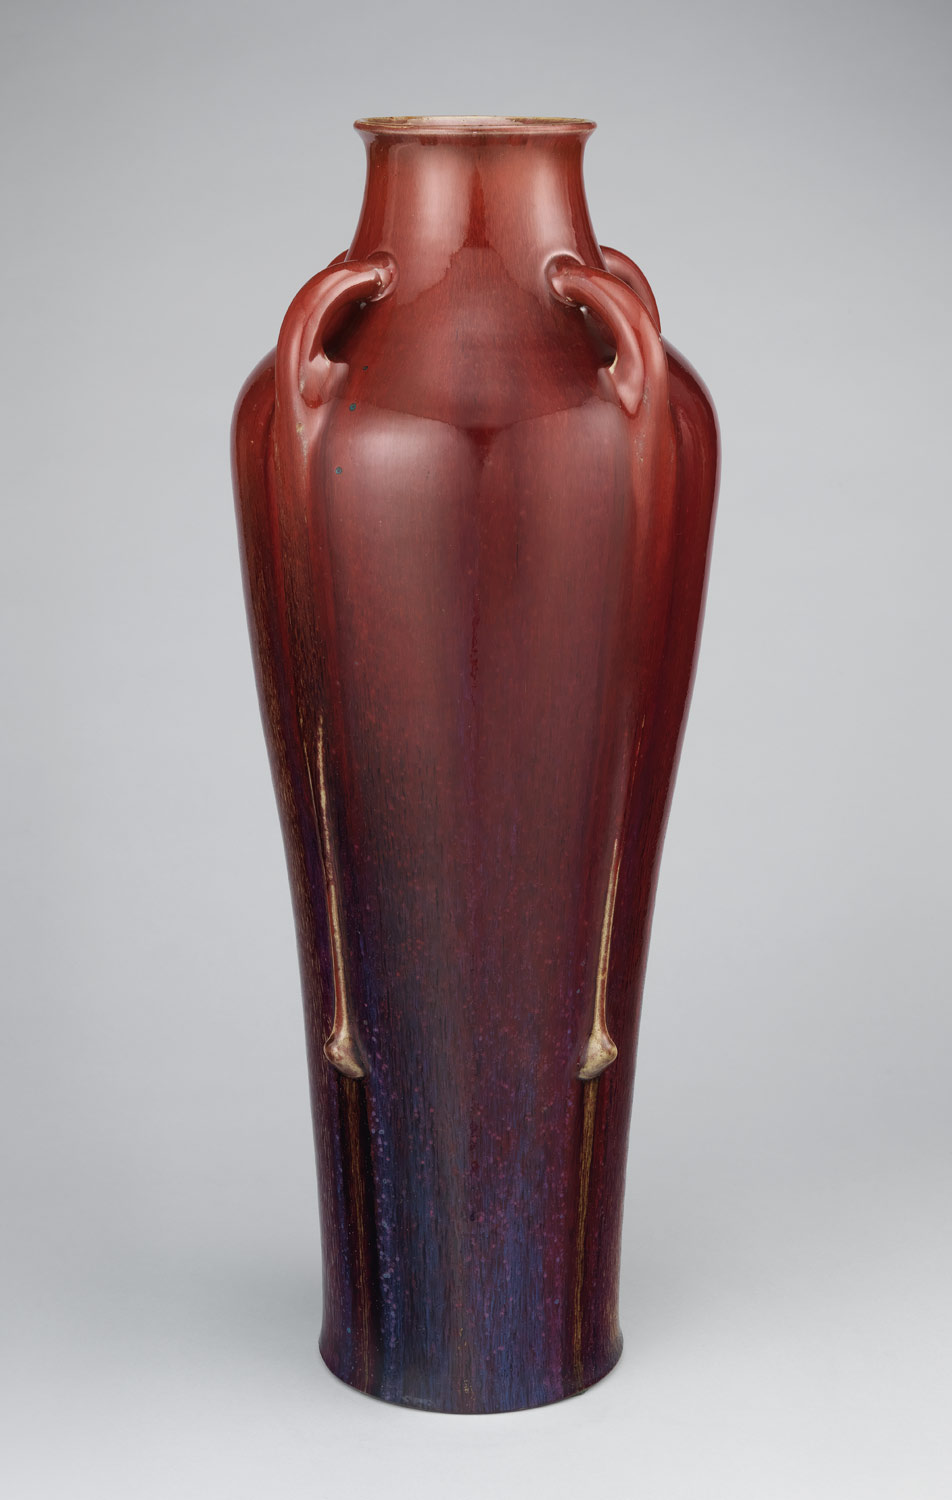 Tall vase with four handles